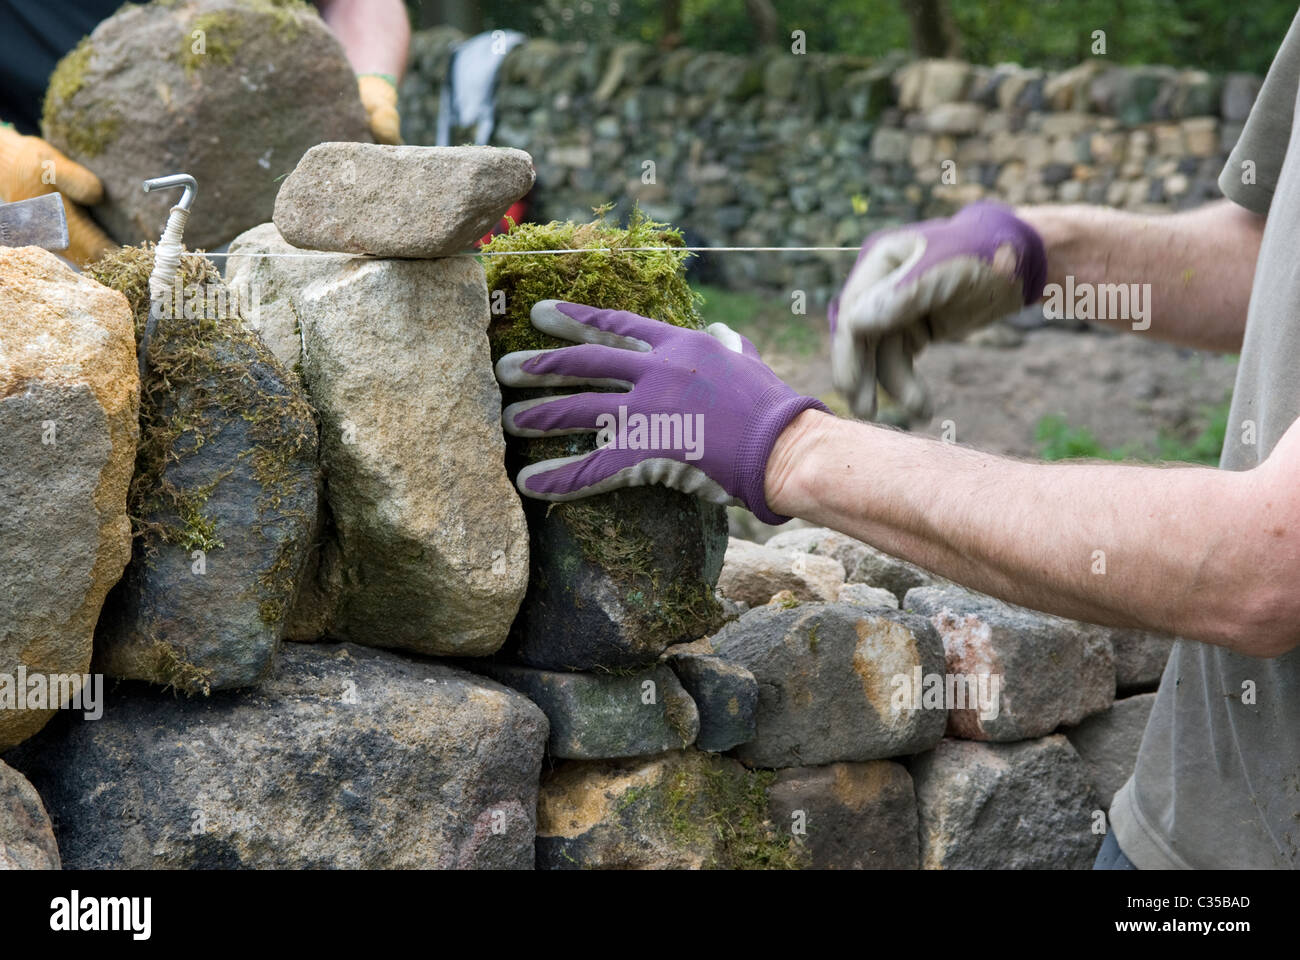 Adding the coping stones to a stint of rebuilt dry stone wall. - Stock Image